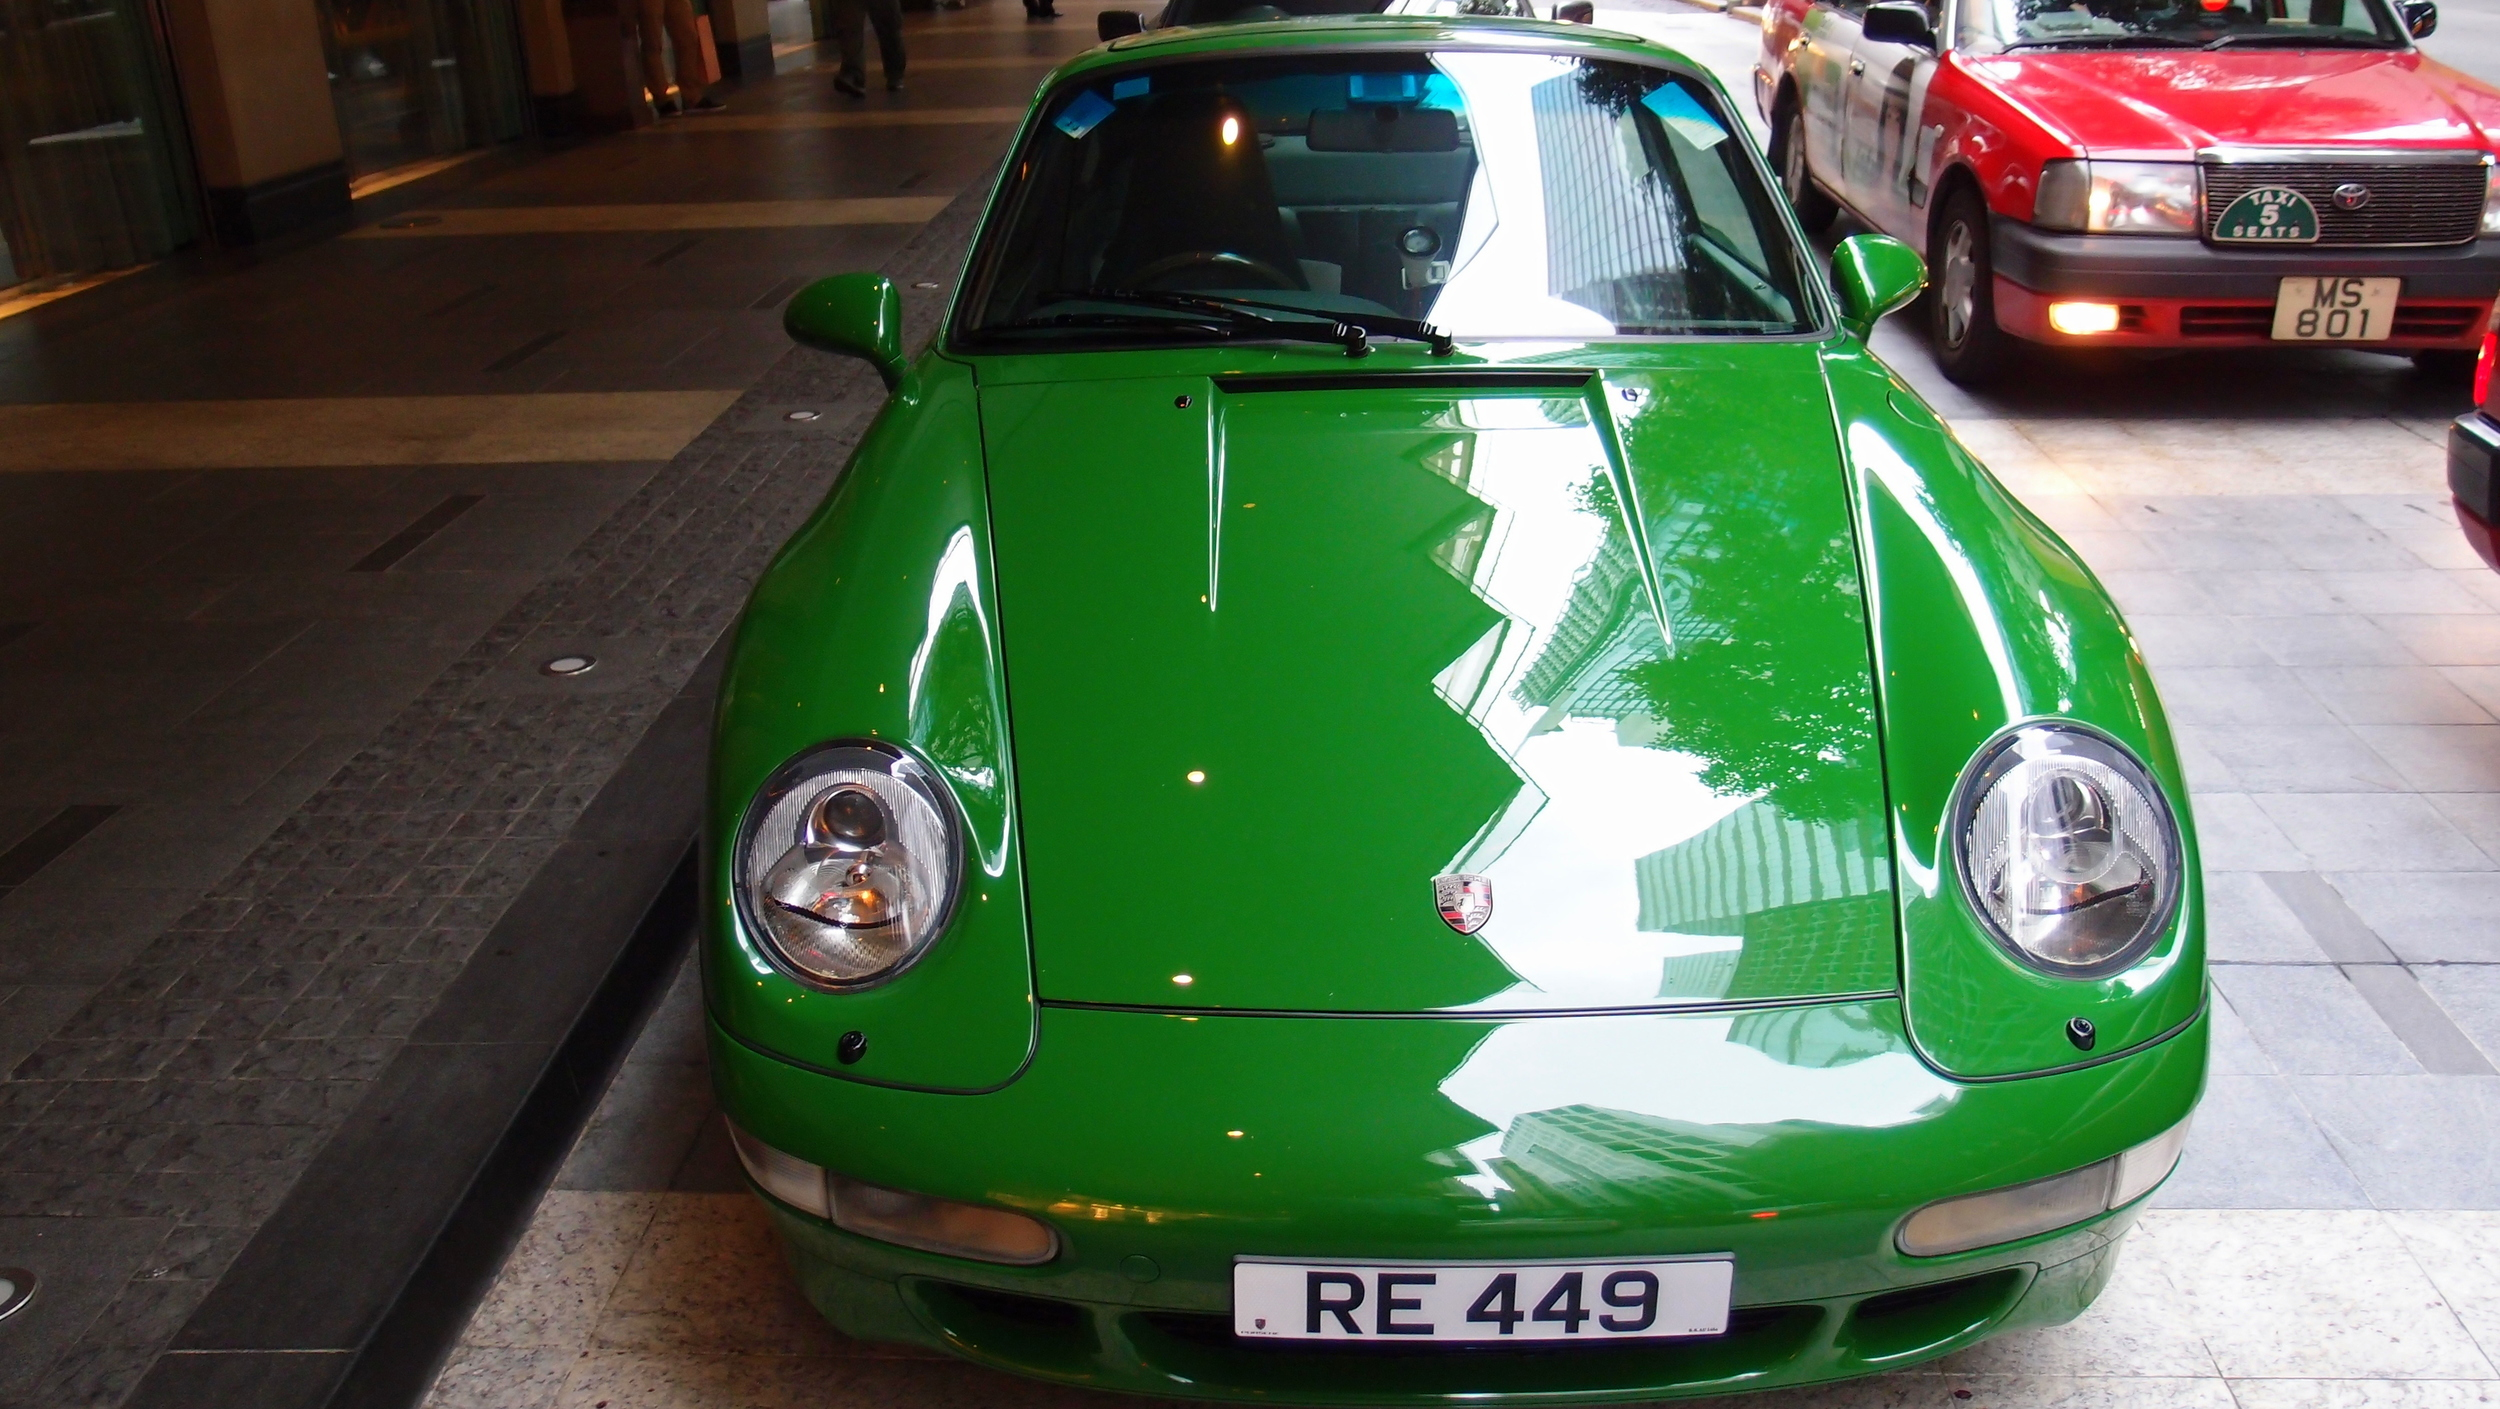 A rather odd green Porsche Carrera